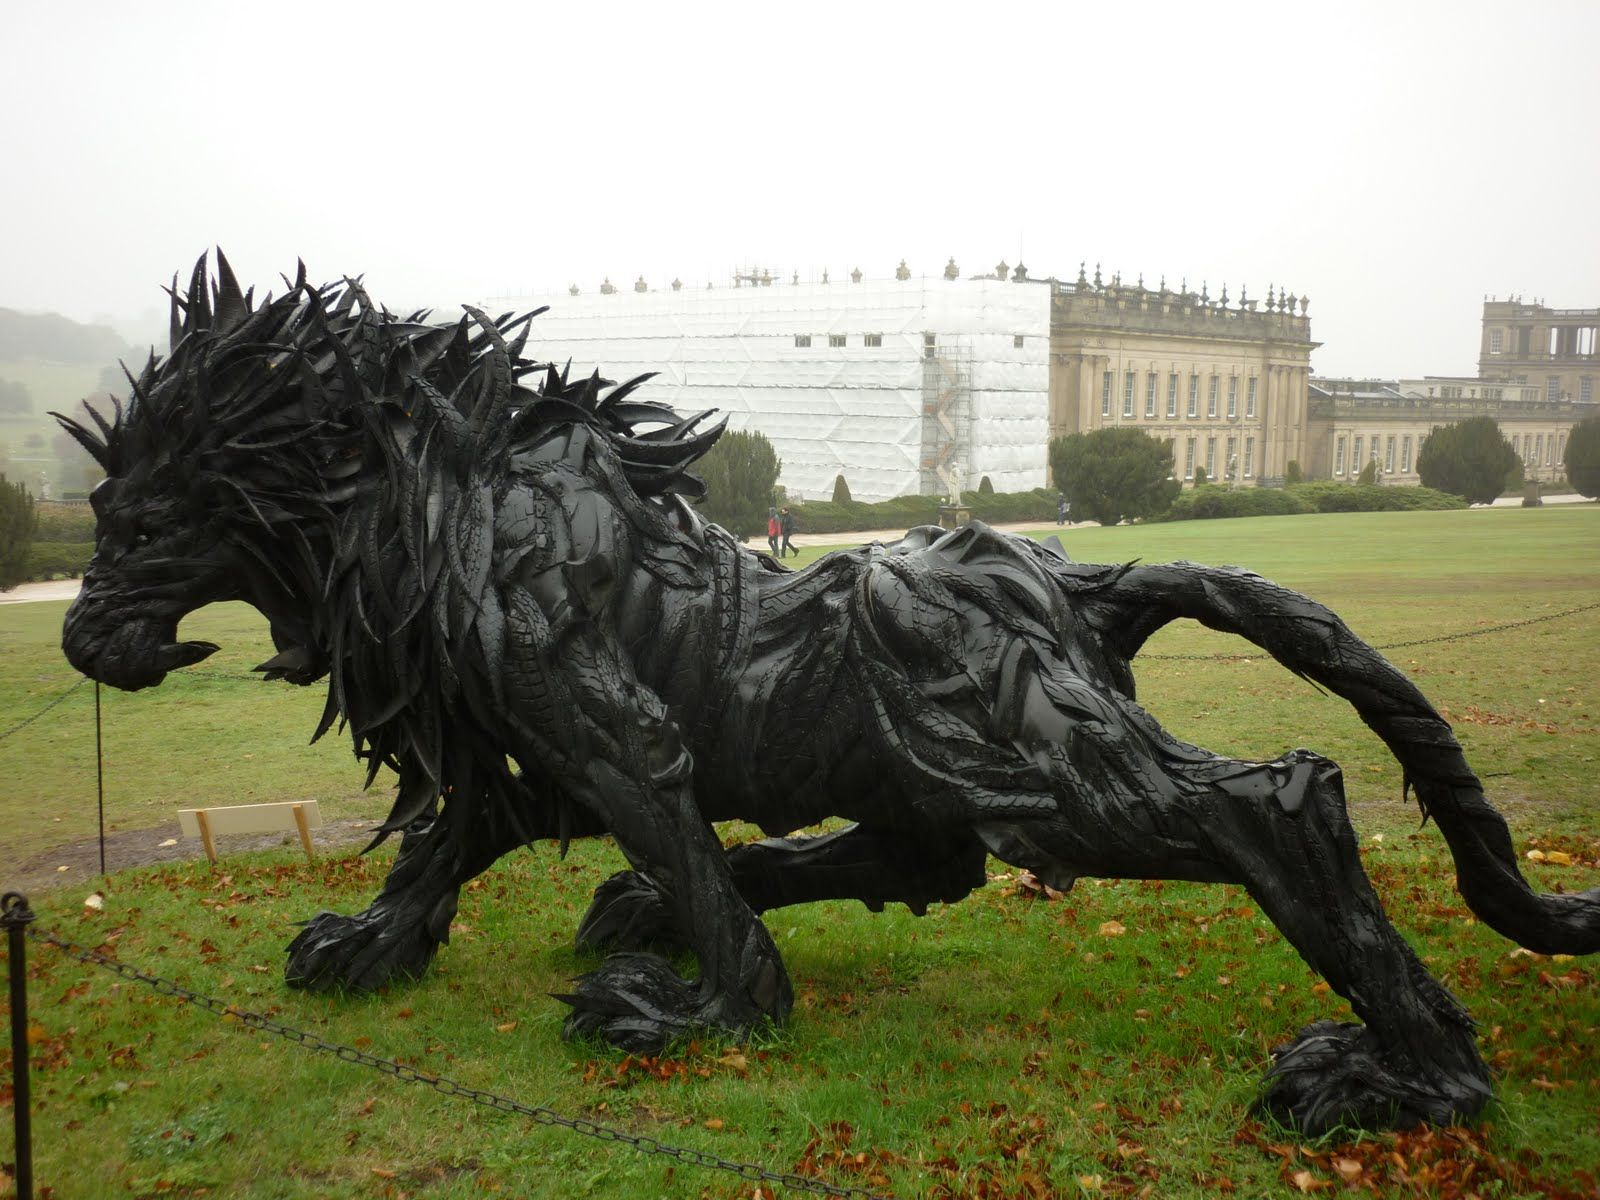 Yong Ho Ji, Lion, sculpture made from recycled tires.